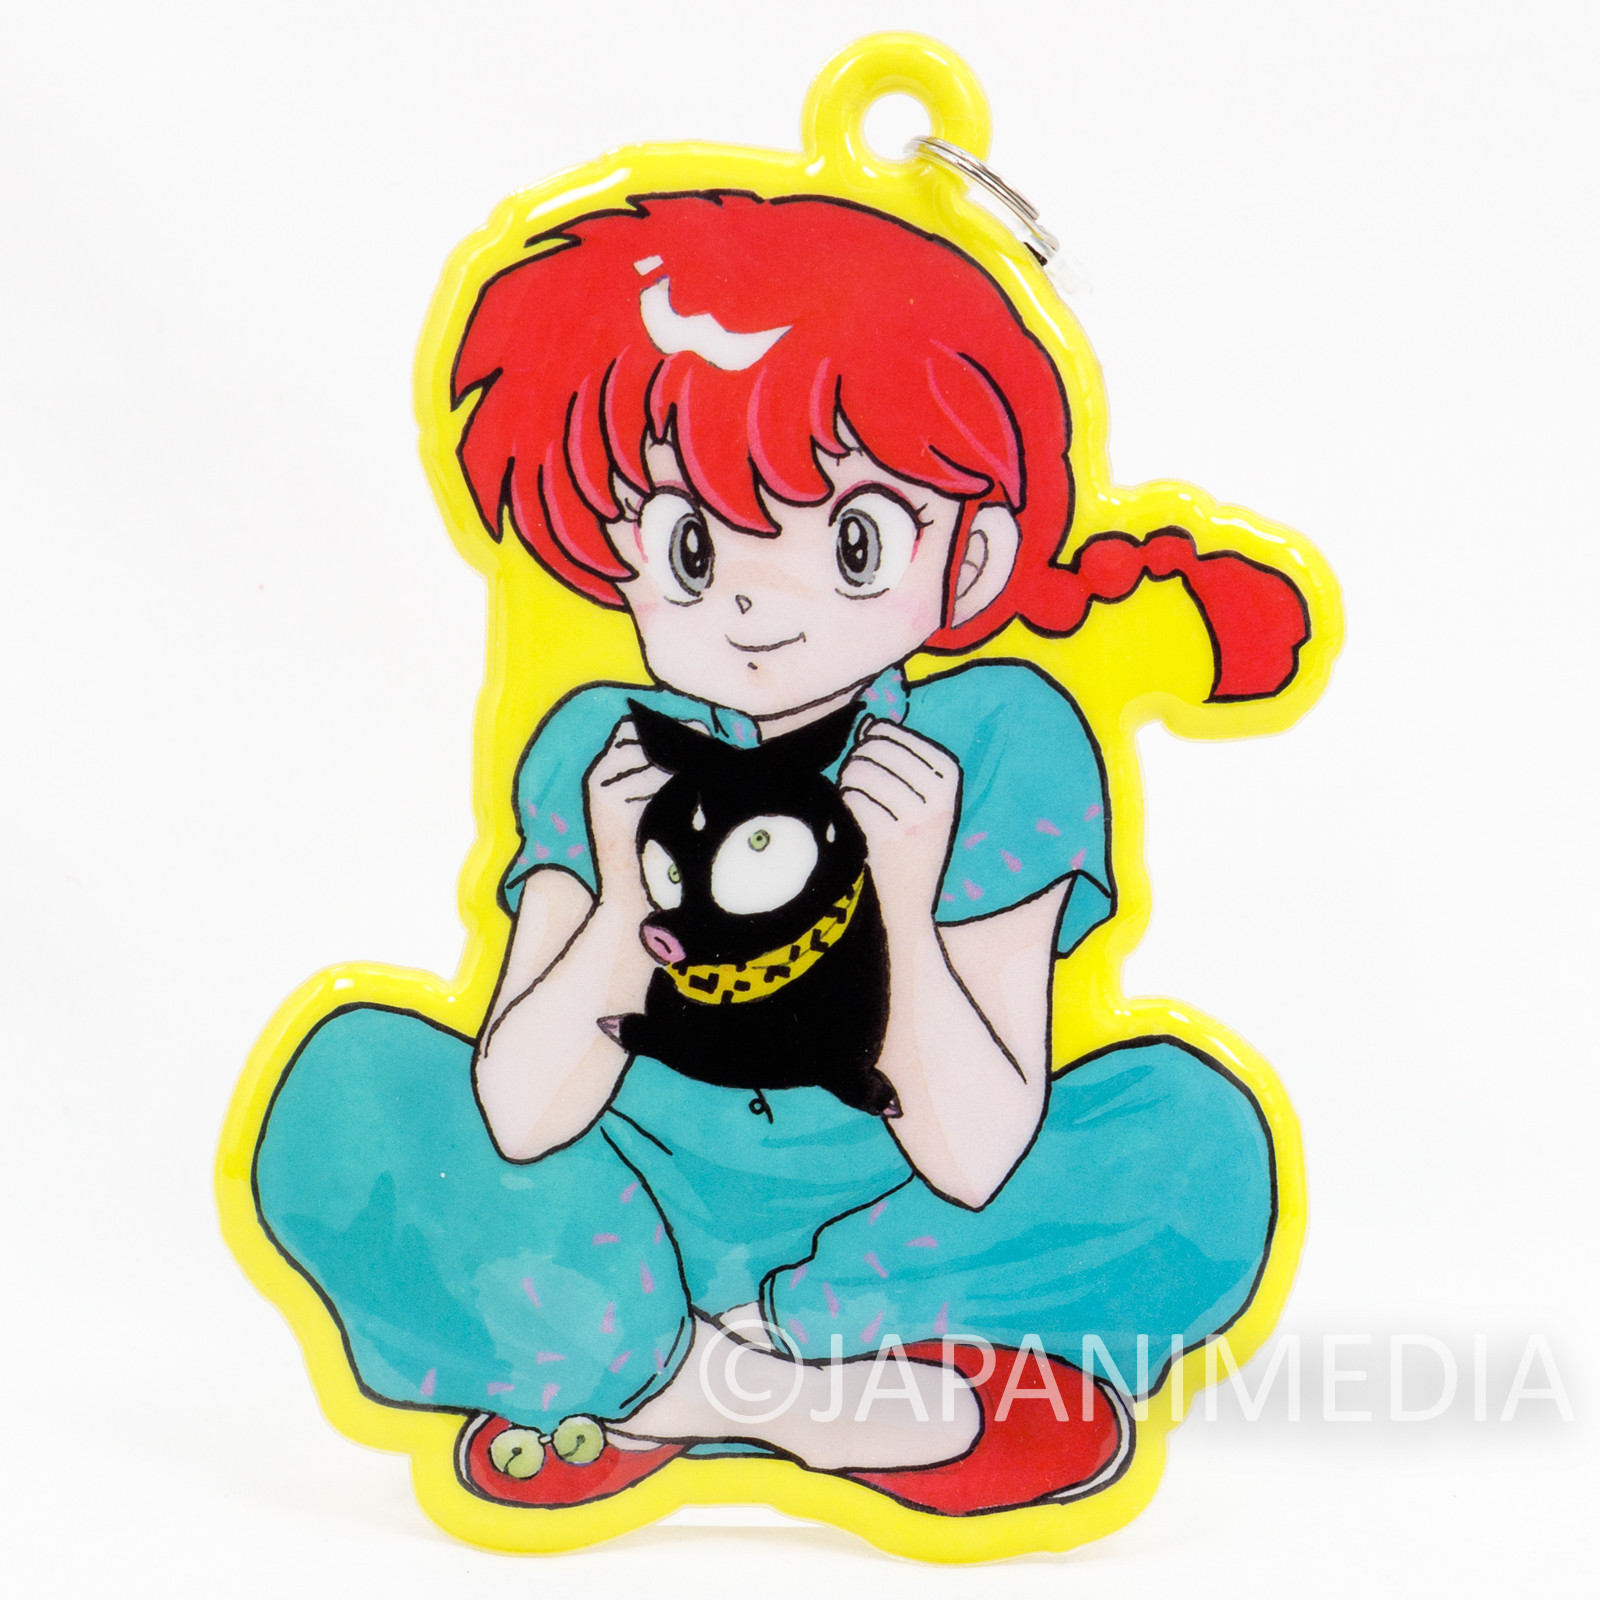 Ranma 1/2 Ranma Saotome Pass Card Holder Case JAPAN ANIME MANGA